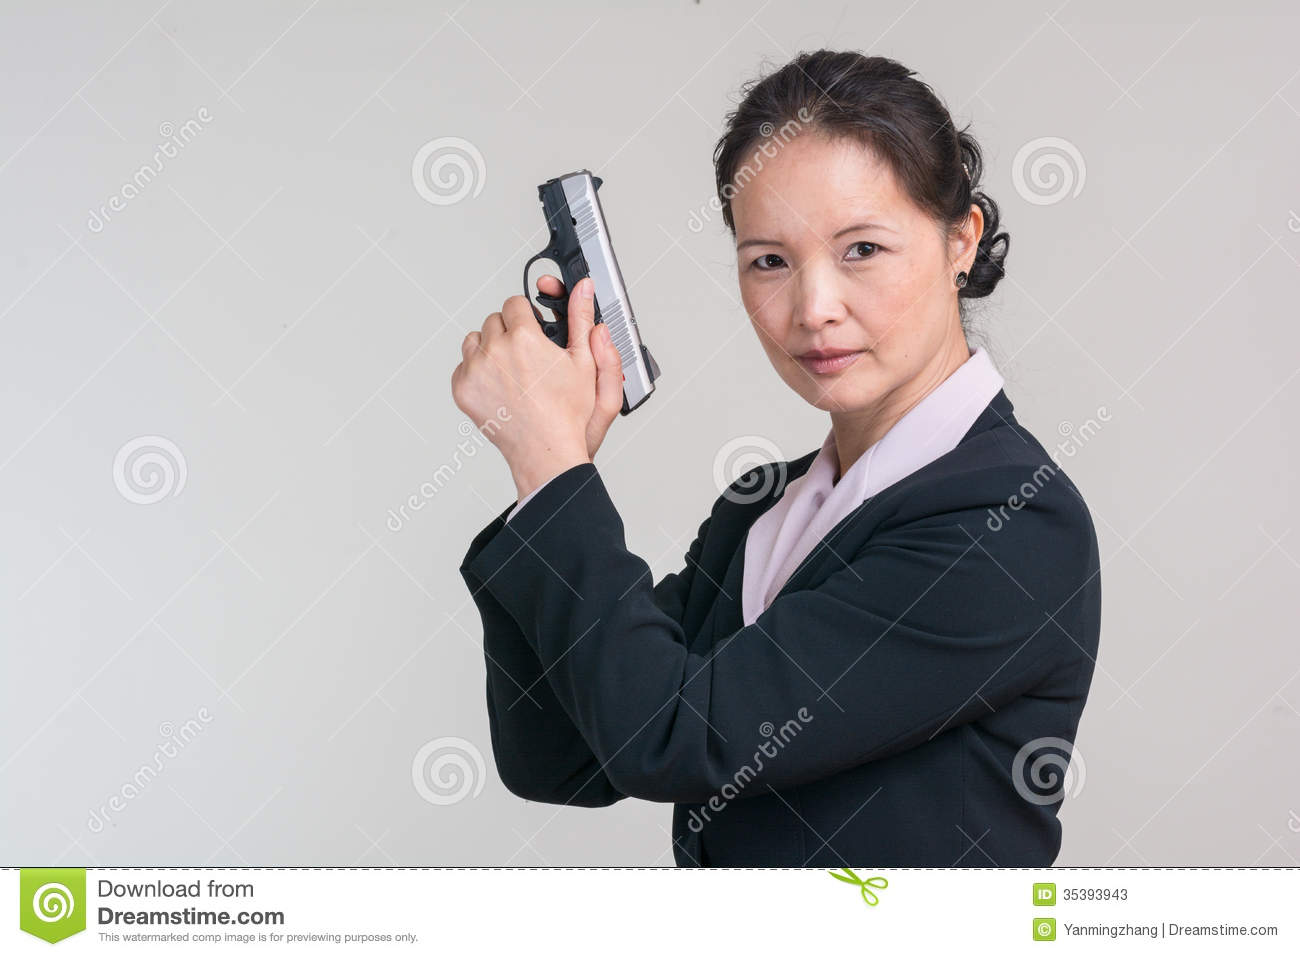 Woman Holding A Hand Gun Stock Image Image Of Asian 35393943